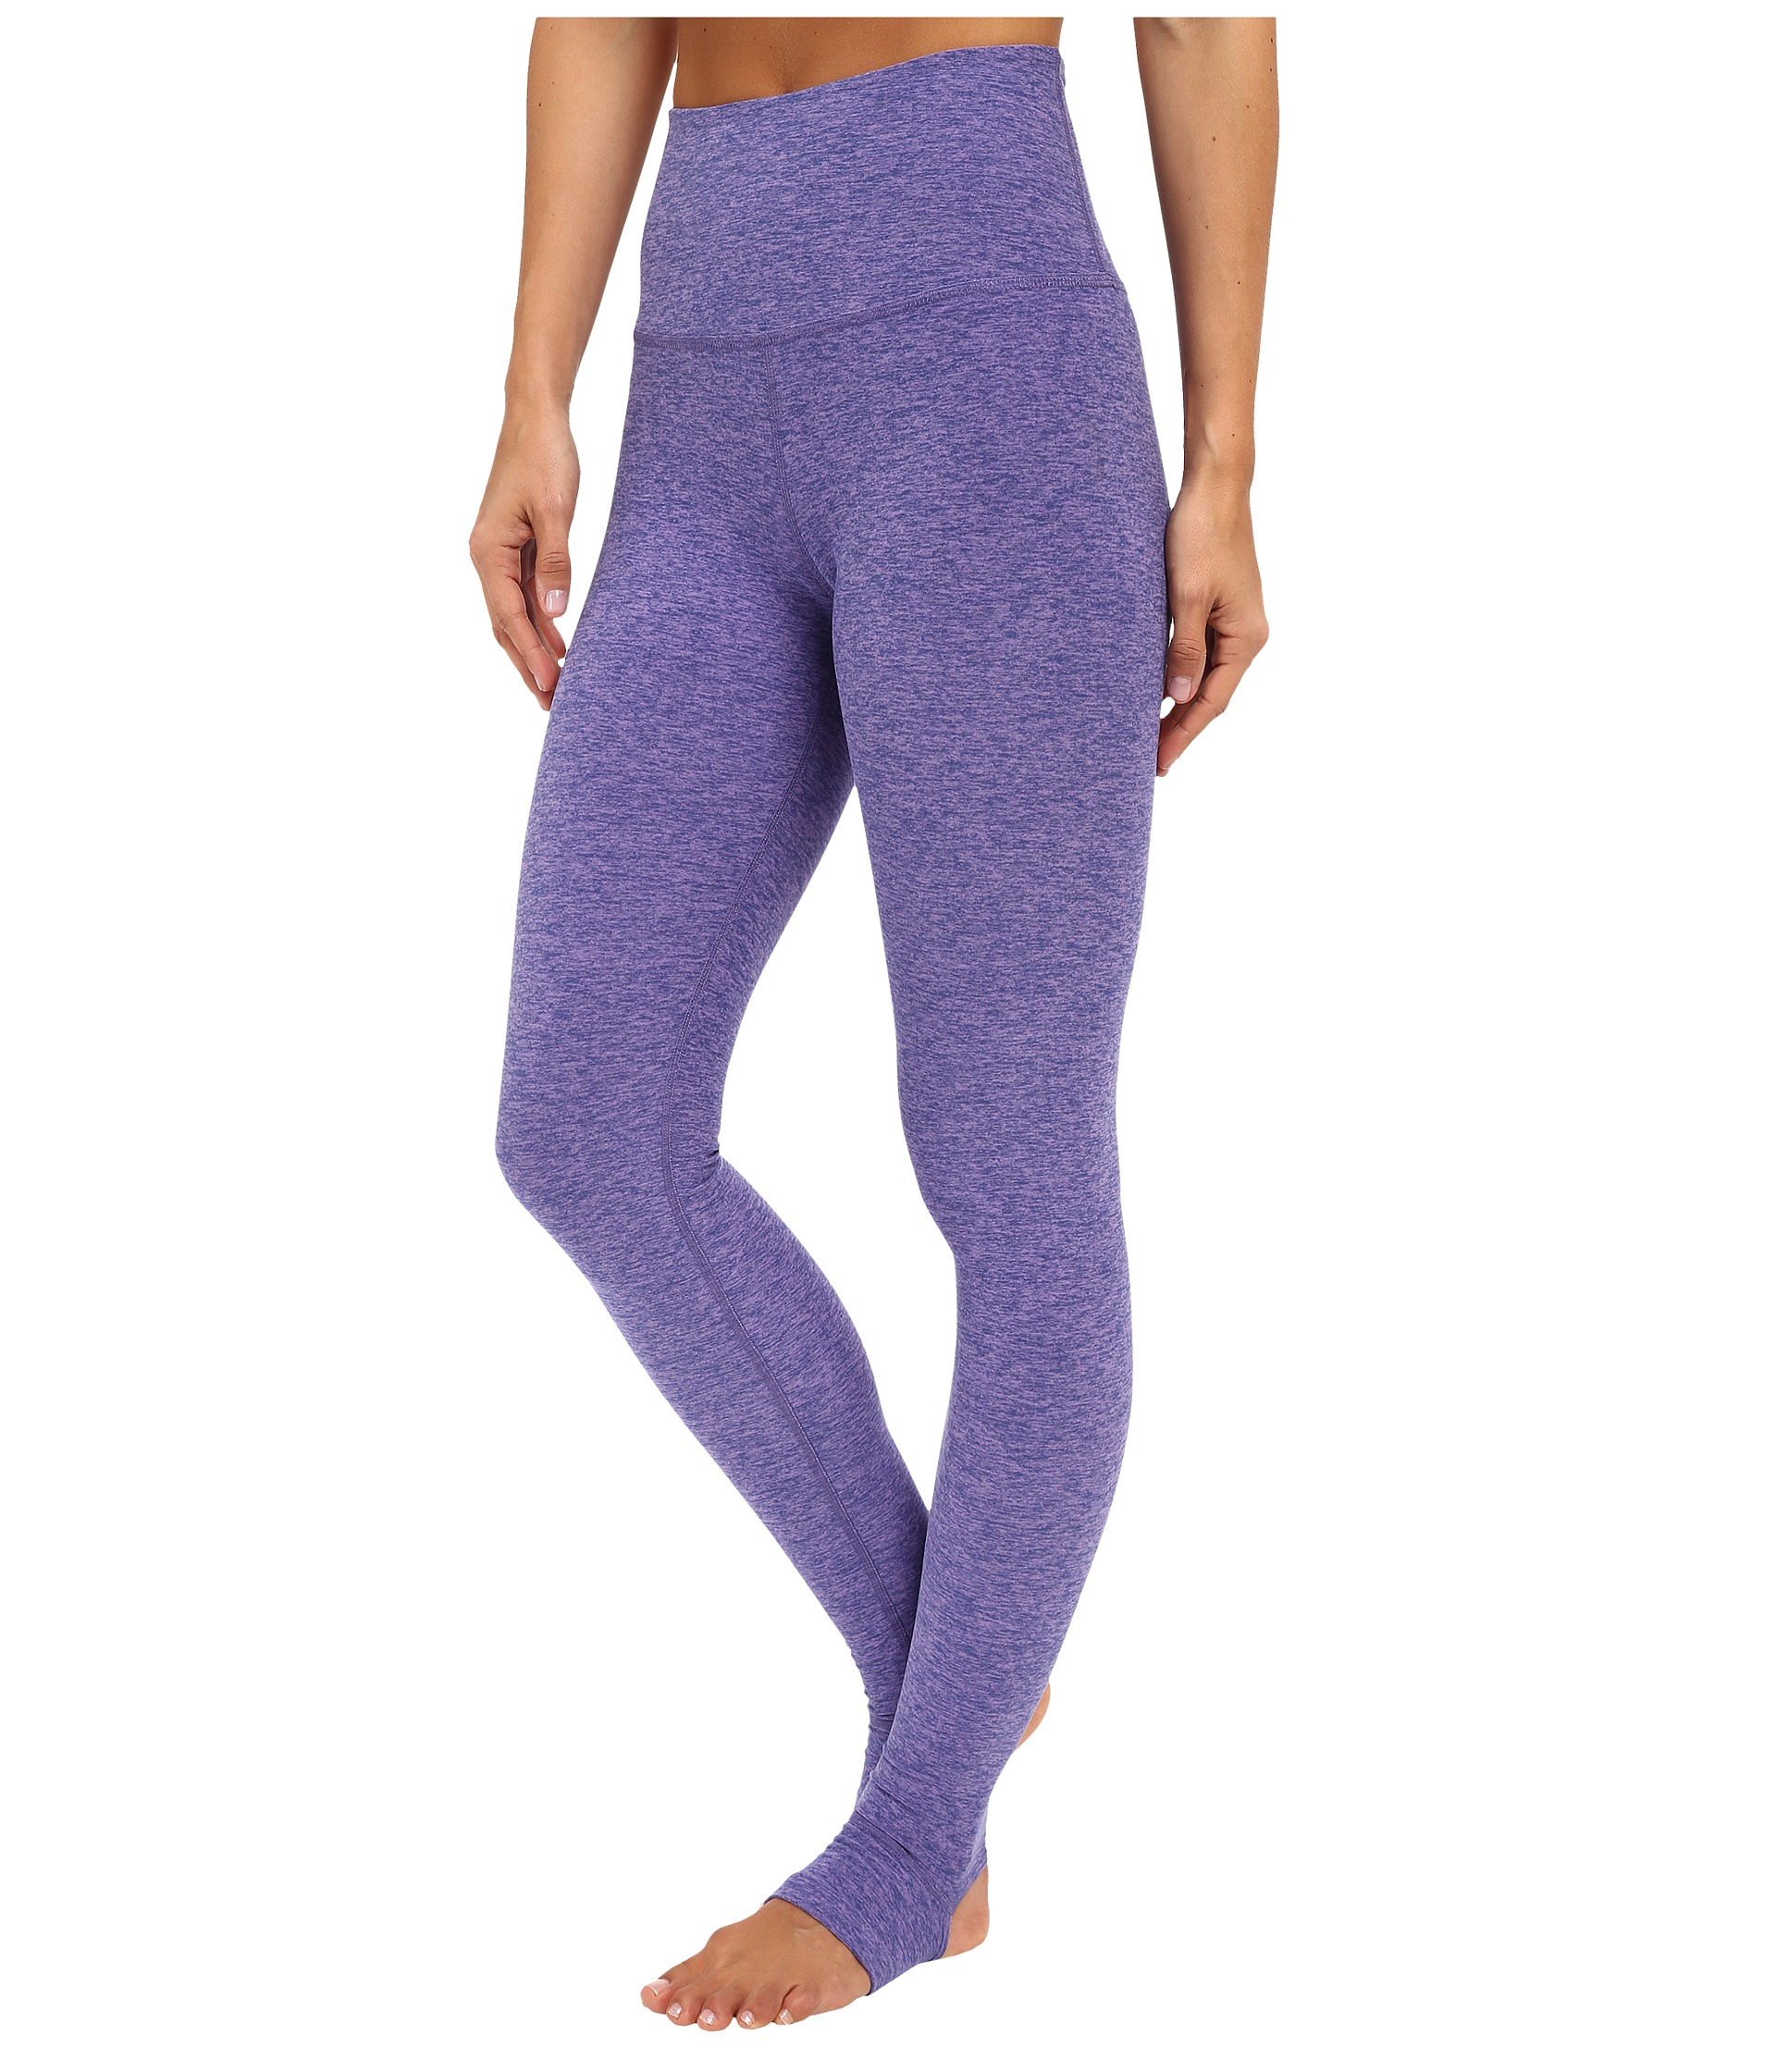 4544622e722e5c Beyond Yoga High Waist Stirrup Leggings in Blue - Lyst